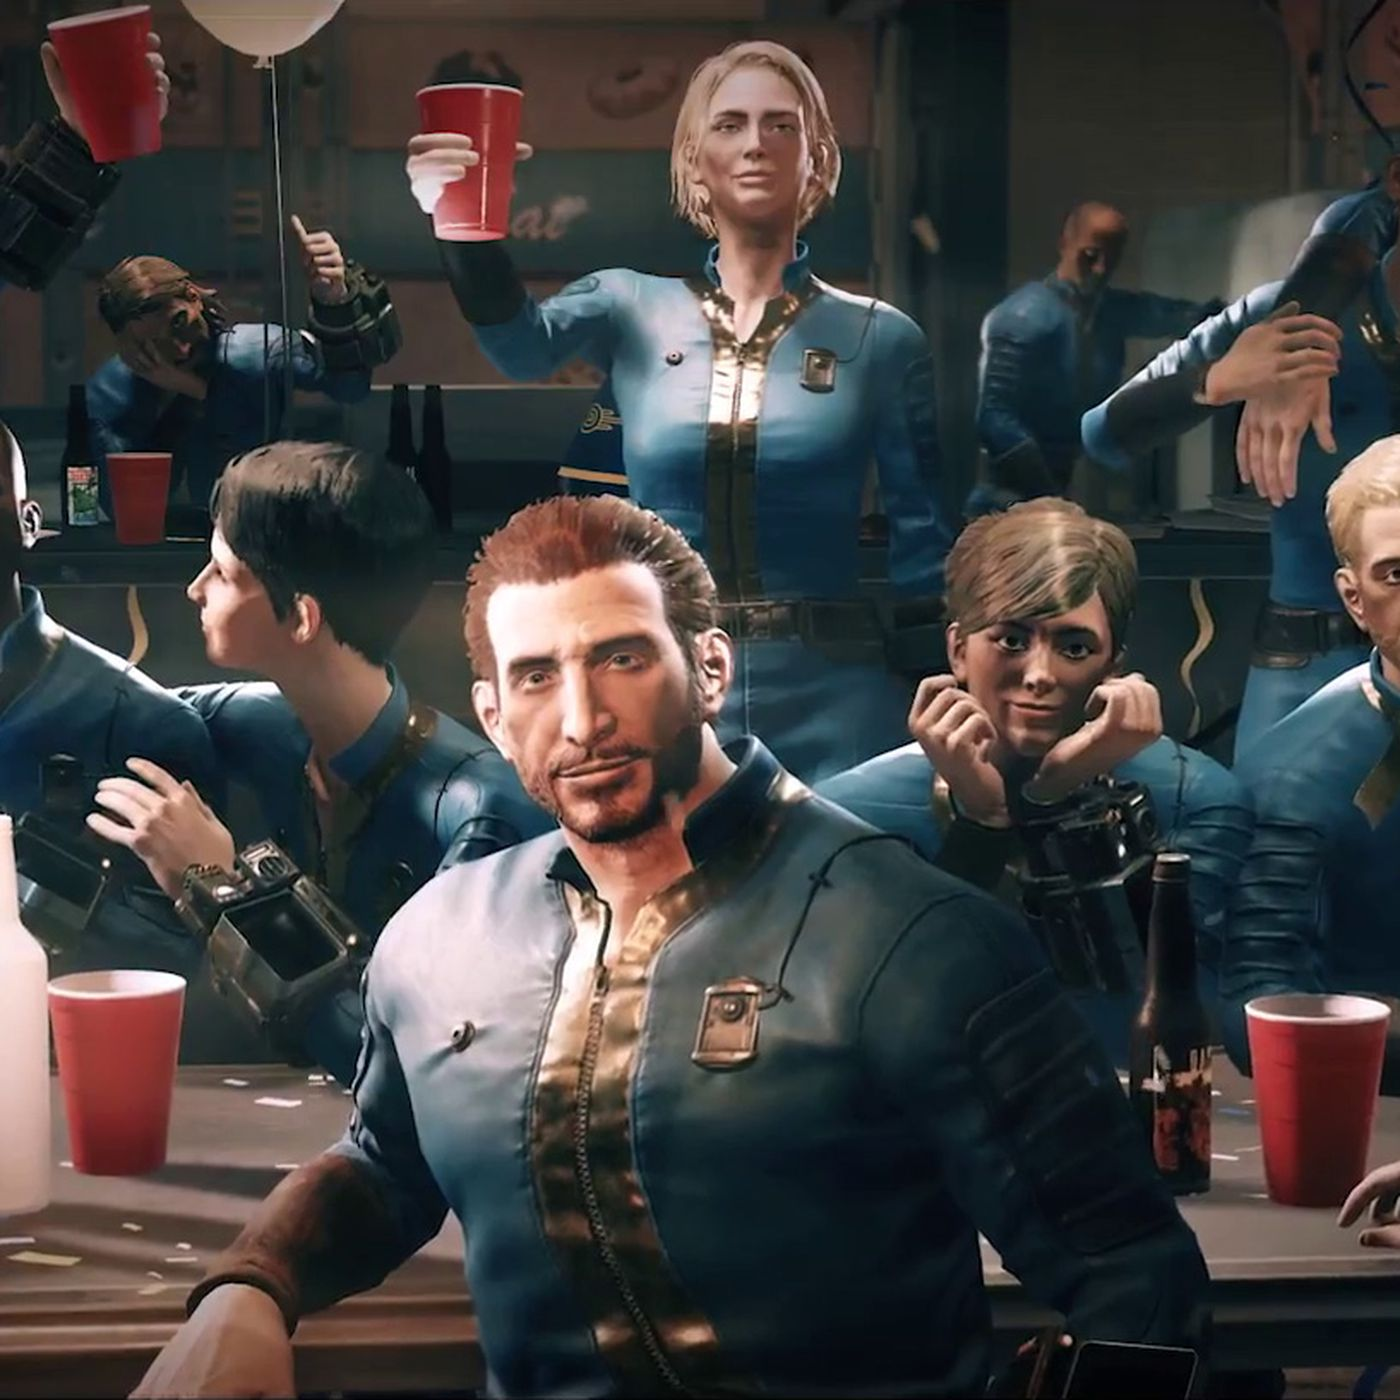 Fallout 76 beta release date announced: Xbox One first, then